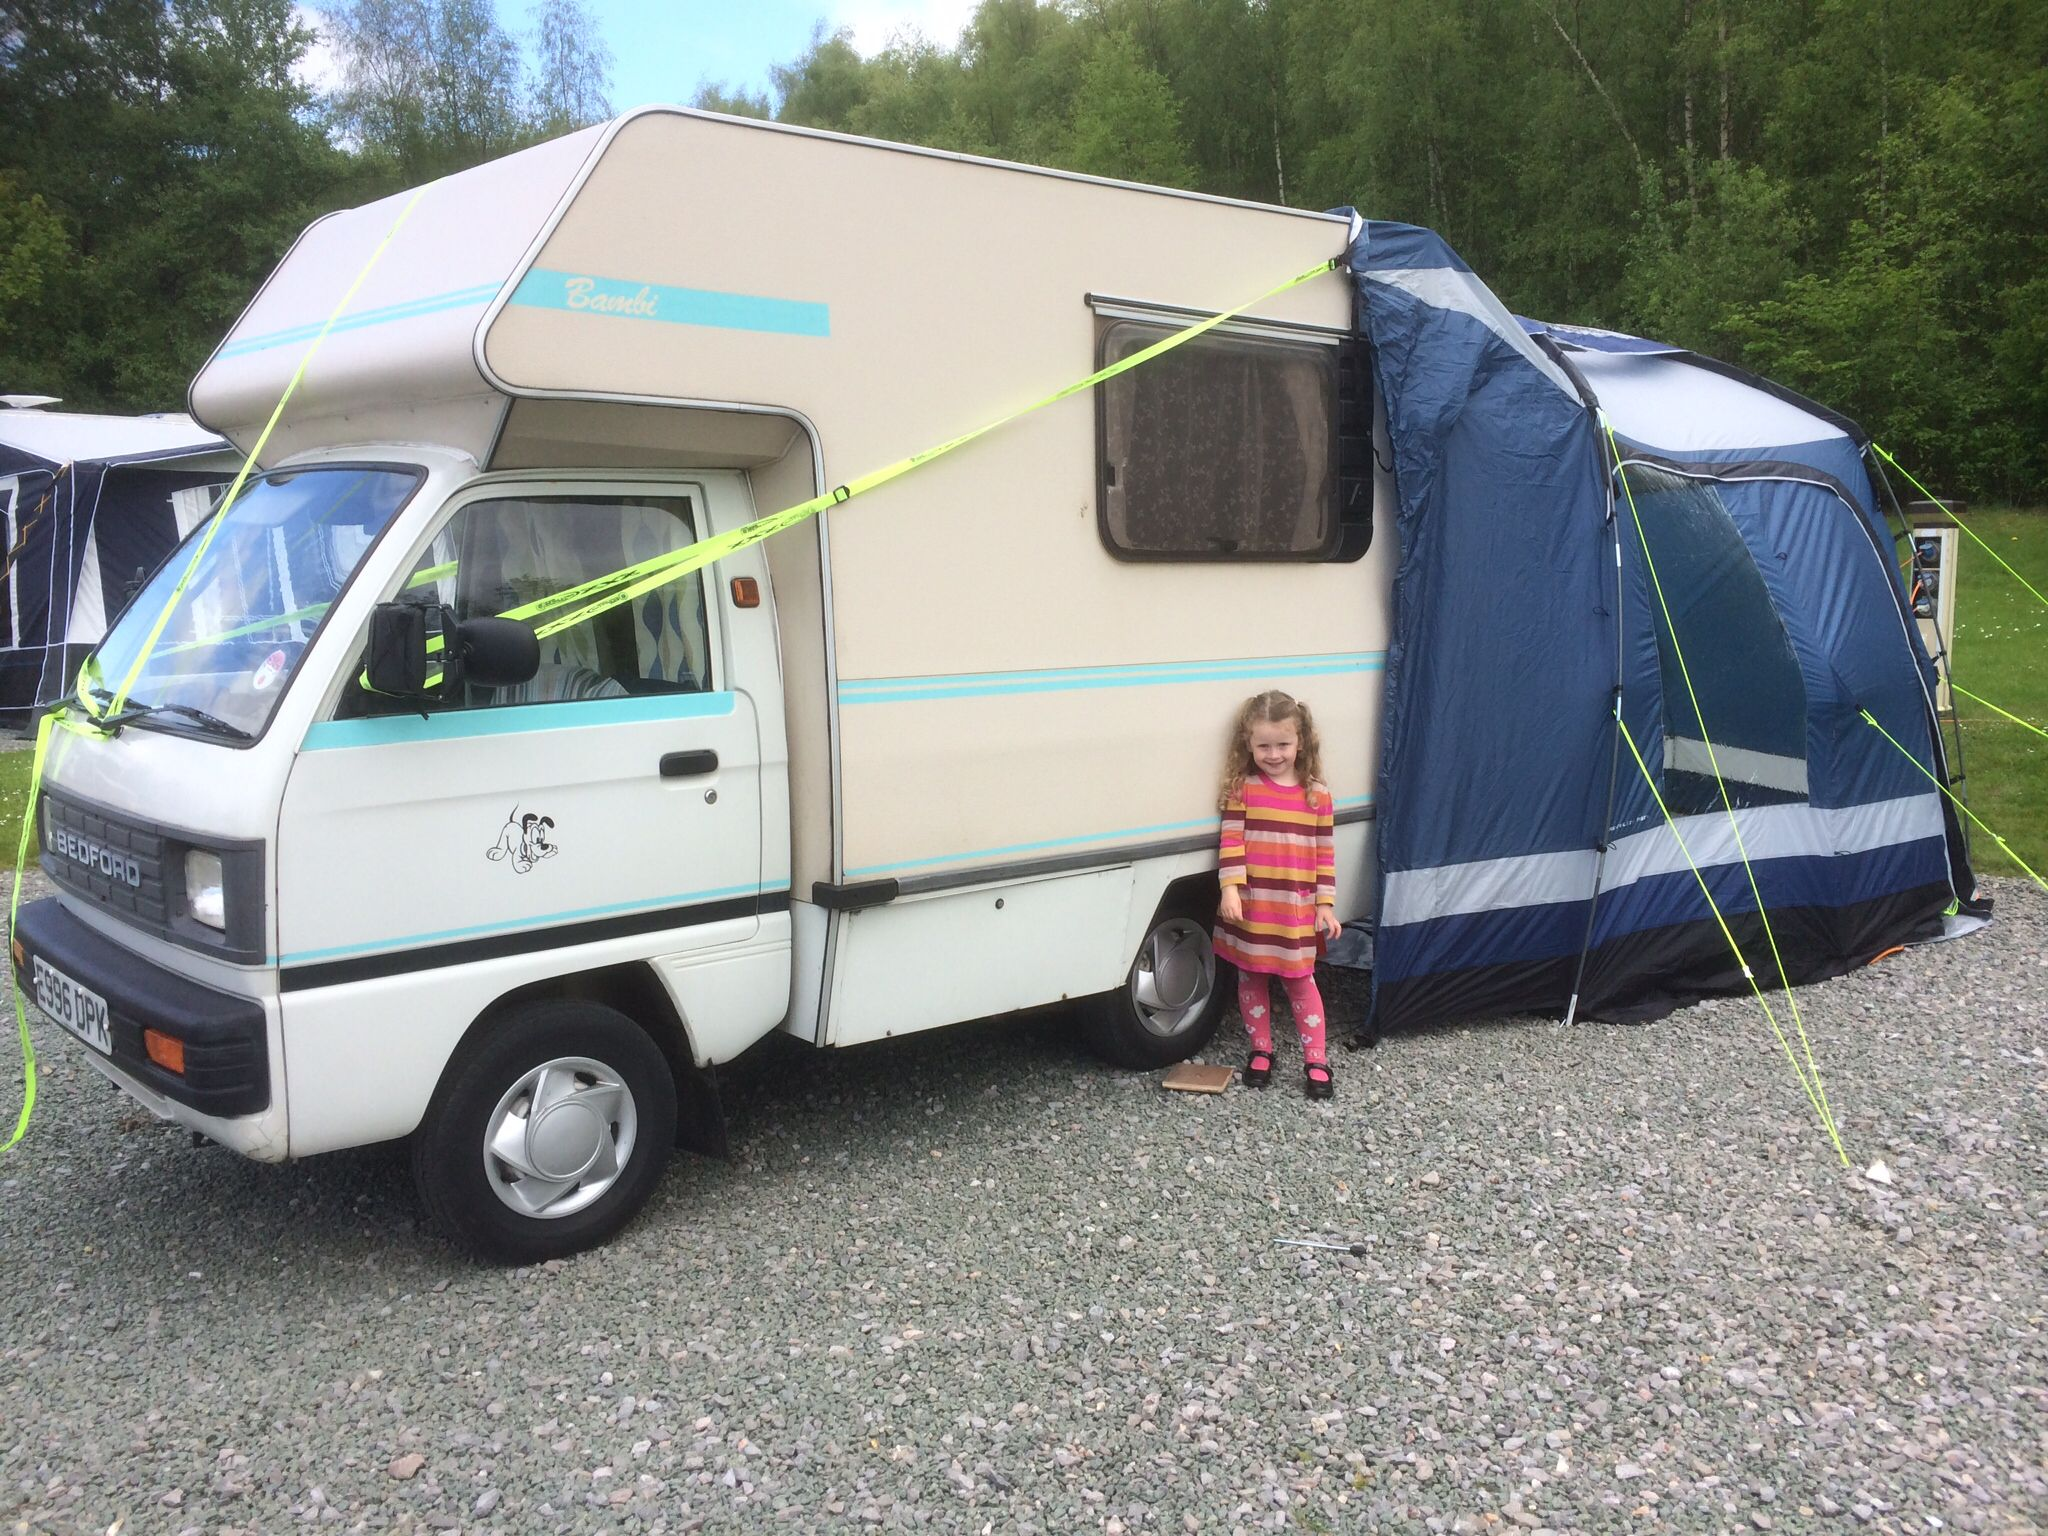 Camping with mary